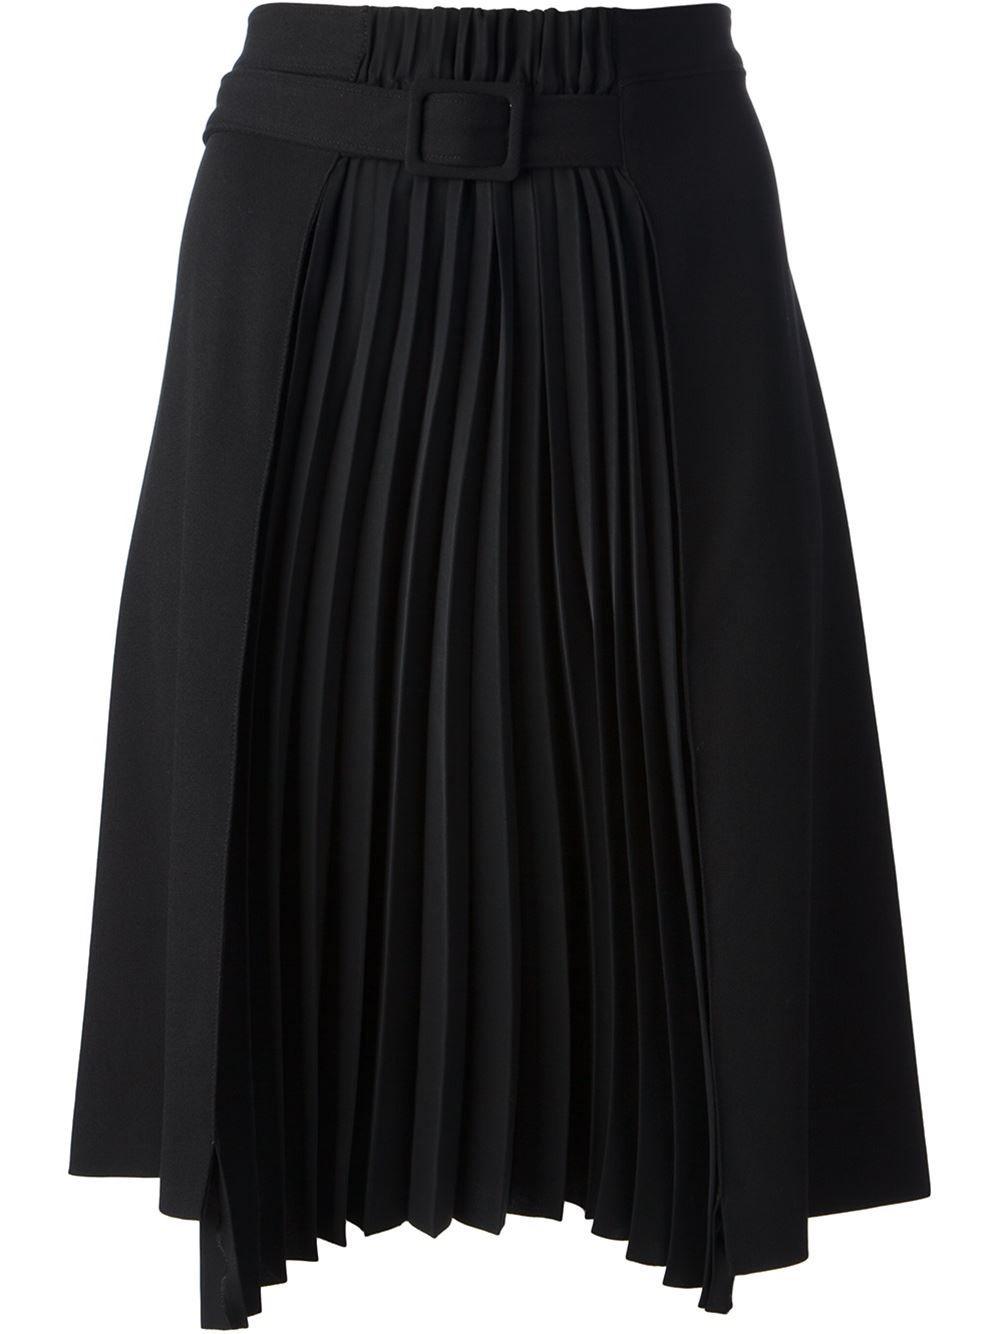 Shop For Cheap Online Classic Sale Online Womens High-Rise Pleated Skirt Maison Martin Margiela Release Dates For Sale TX1ZH4fwSI